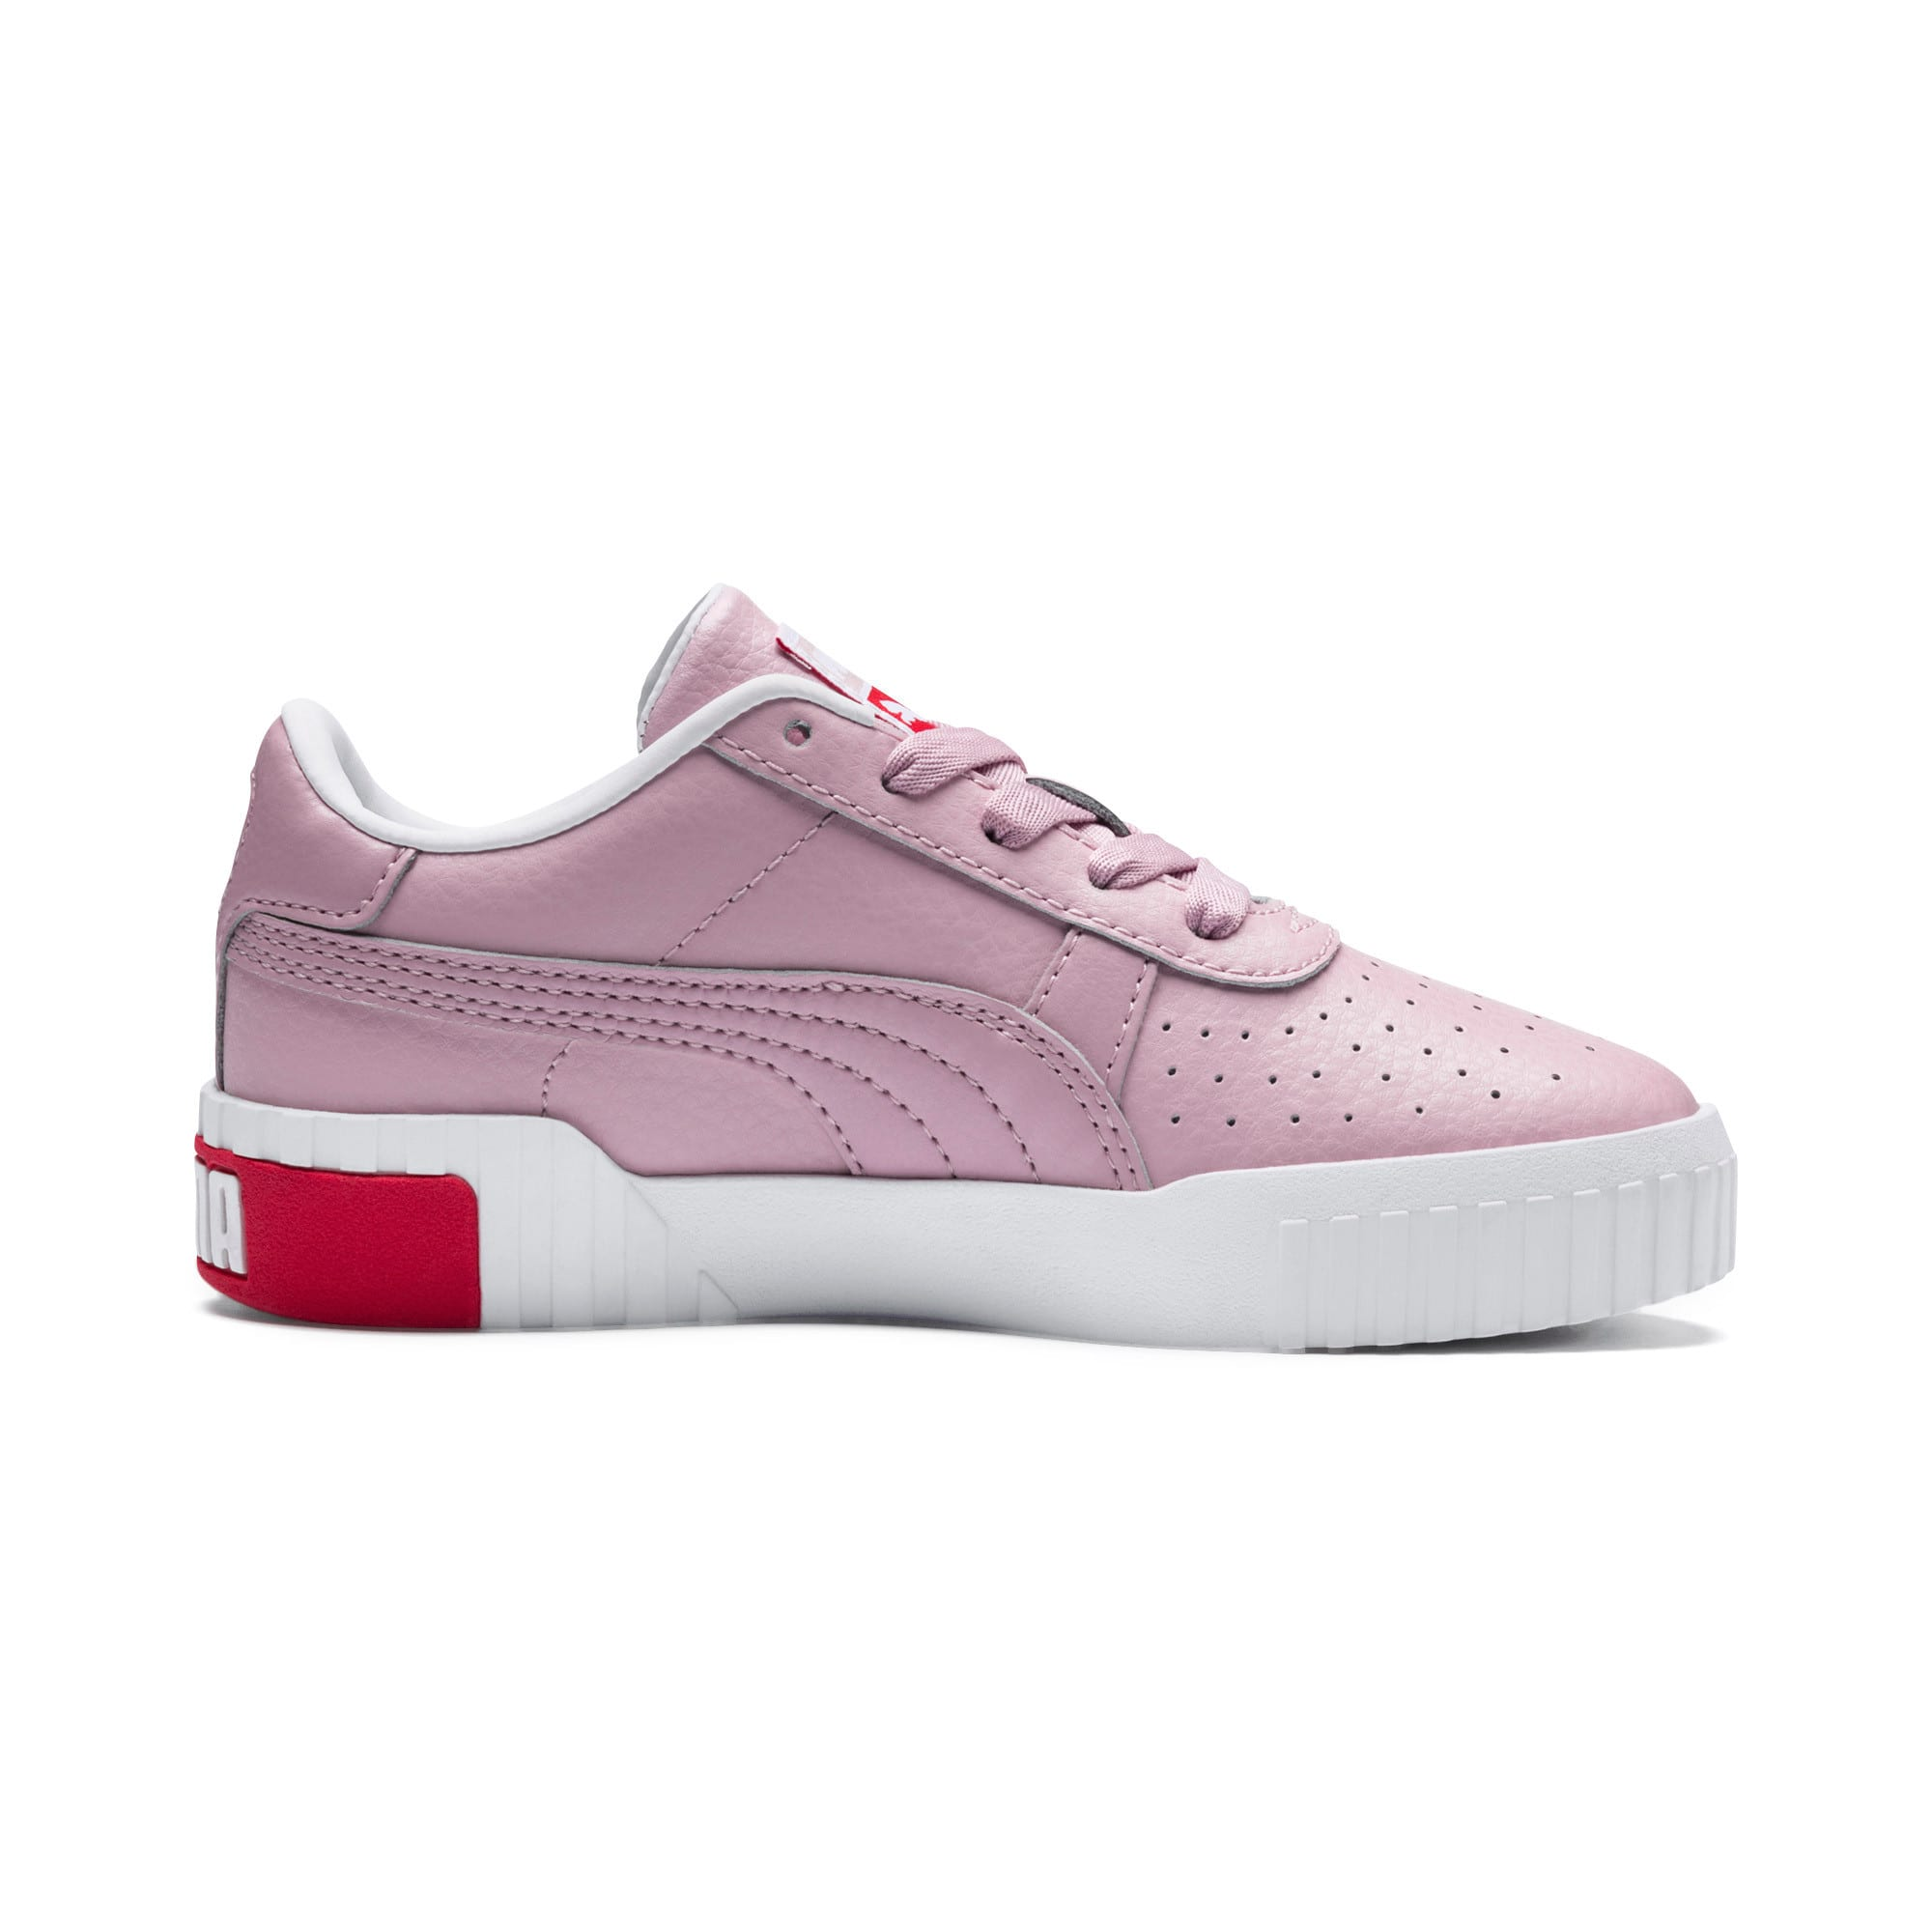 Thumbnail 5 of Cali Girls' Trainers, Puma White-Hibiscus, medium